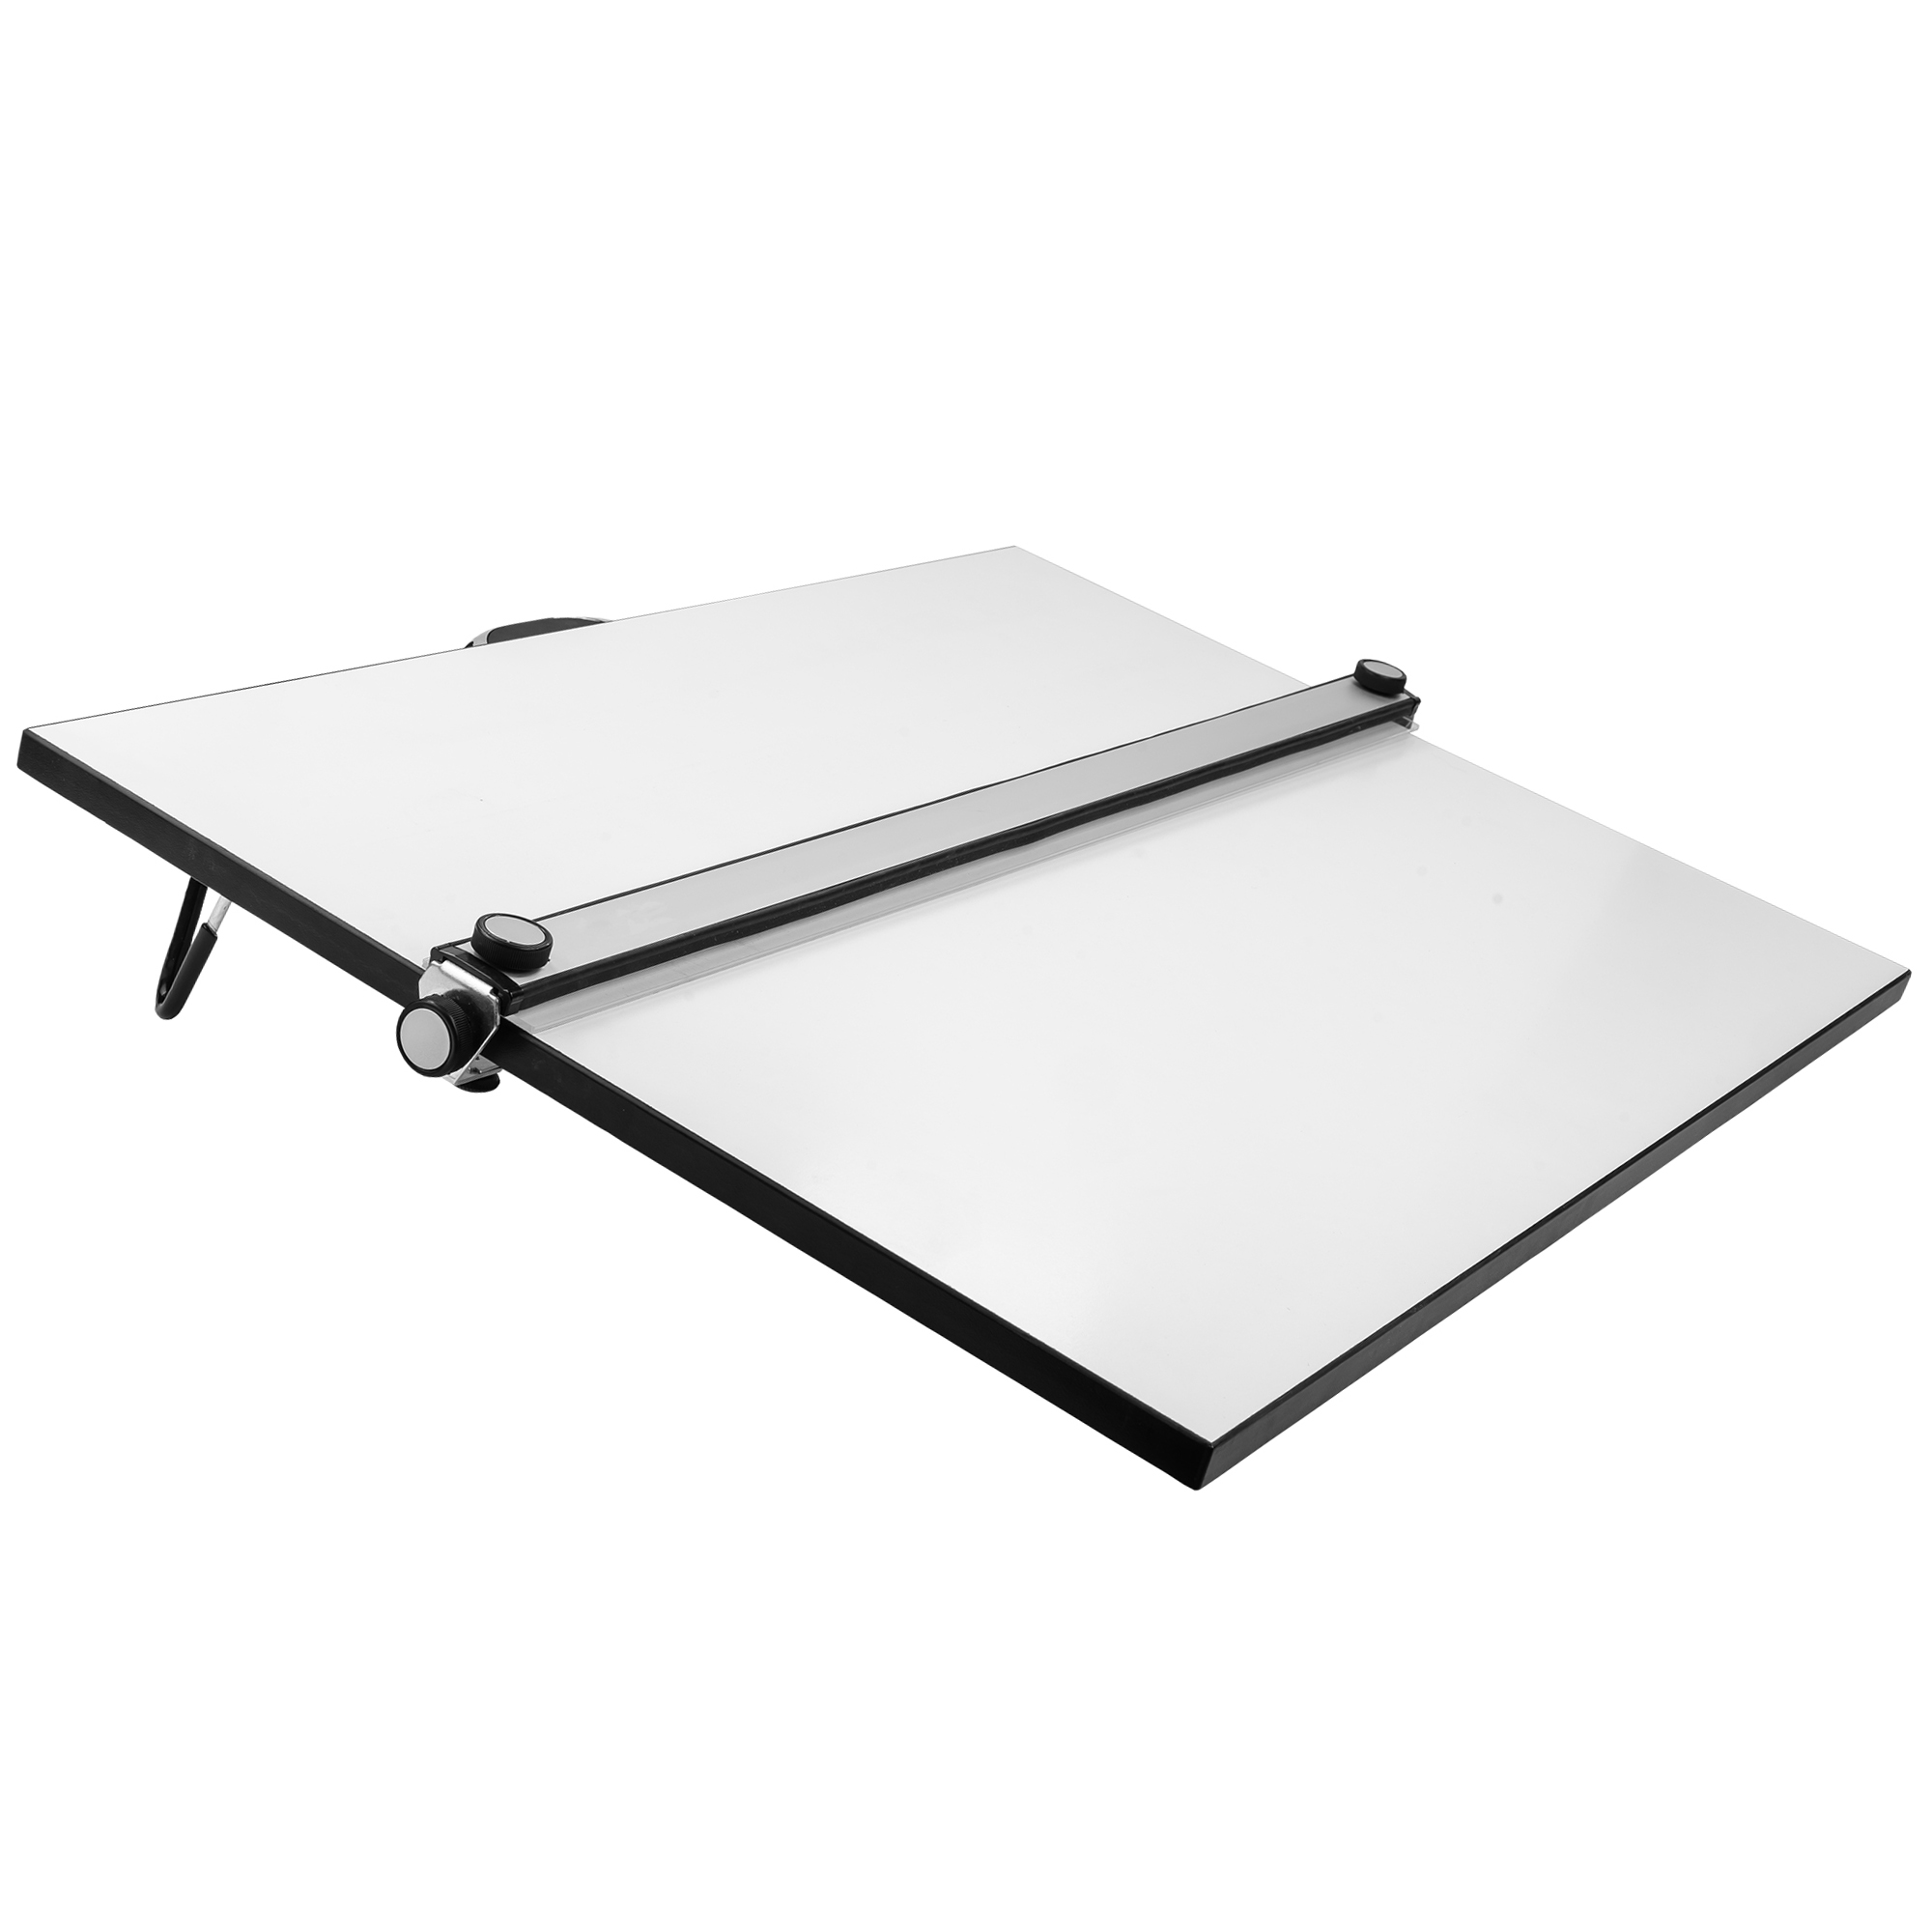 PXB drafting drawing board comes in many sizes, for all workspace sizes from pacific arc.